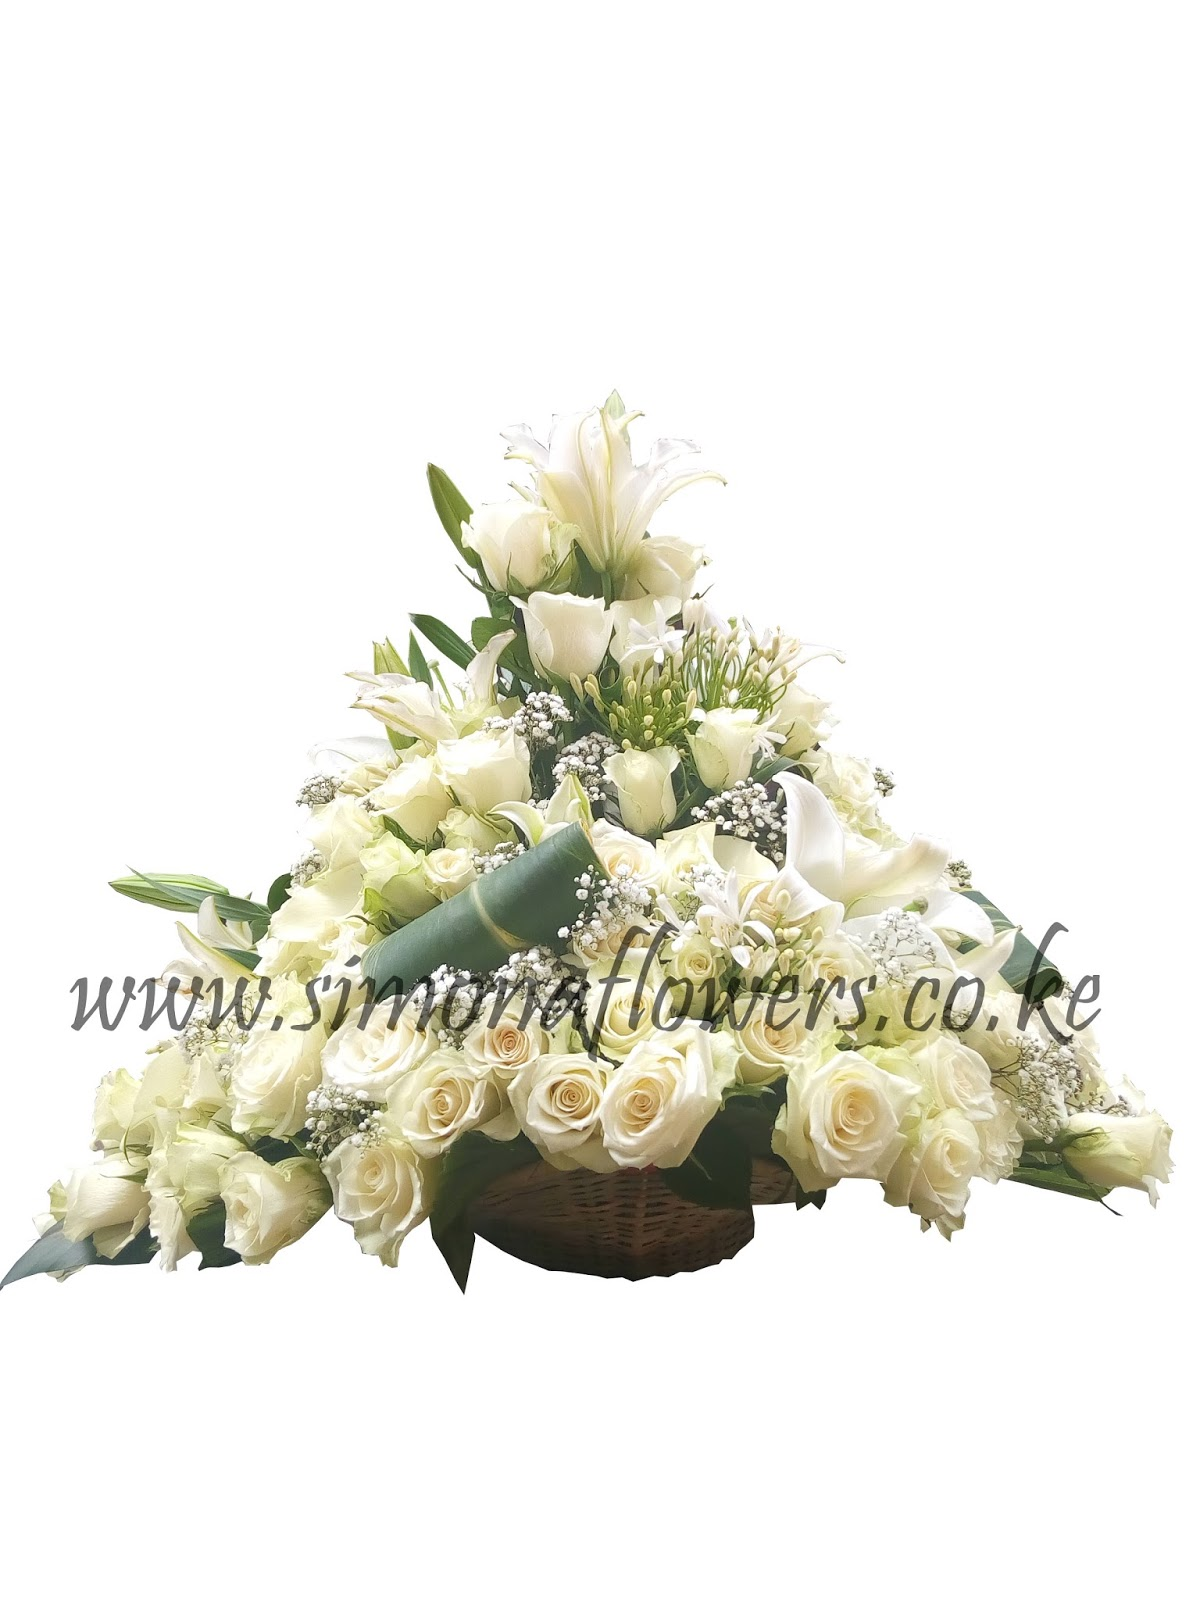 Simona flowers august 2017 simona flowers nairobi known to produce the best birthday flowers all over nairobi simona flowers ensures of the best in floral arrangement izmirmasajfo